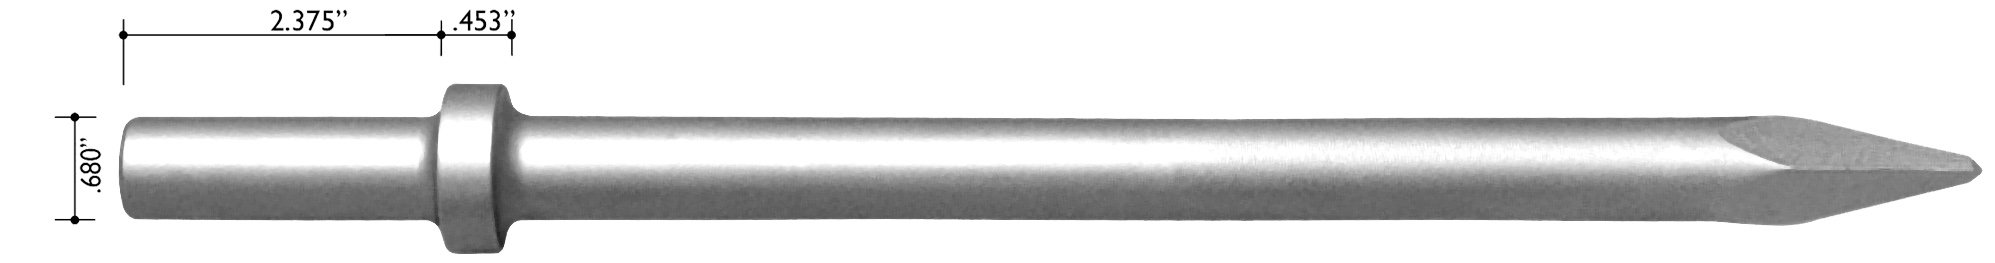 Champion Chisel, 18-Inch Long .680 Round Shank Round Collar Chipping Hammer Moil or Bull Point